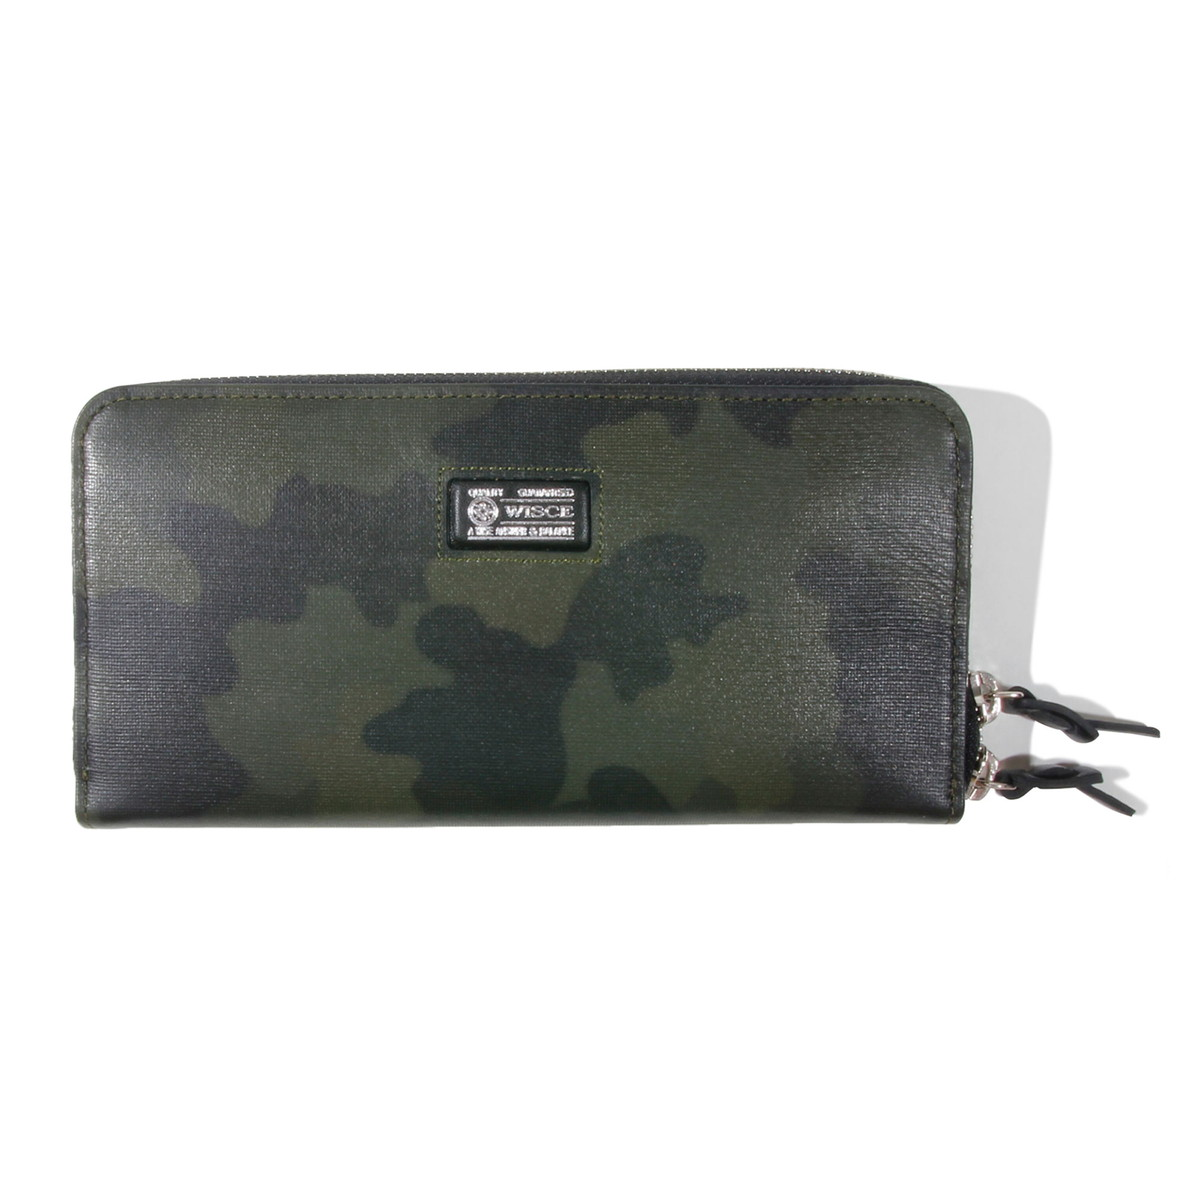 WISCE (ワイス)  CAMOUFLAGE LEATHER  LONG WALLET / 長財布